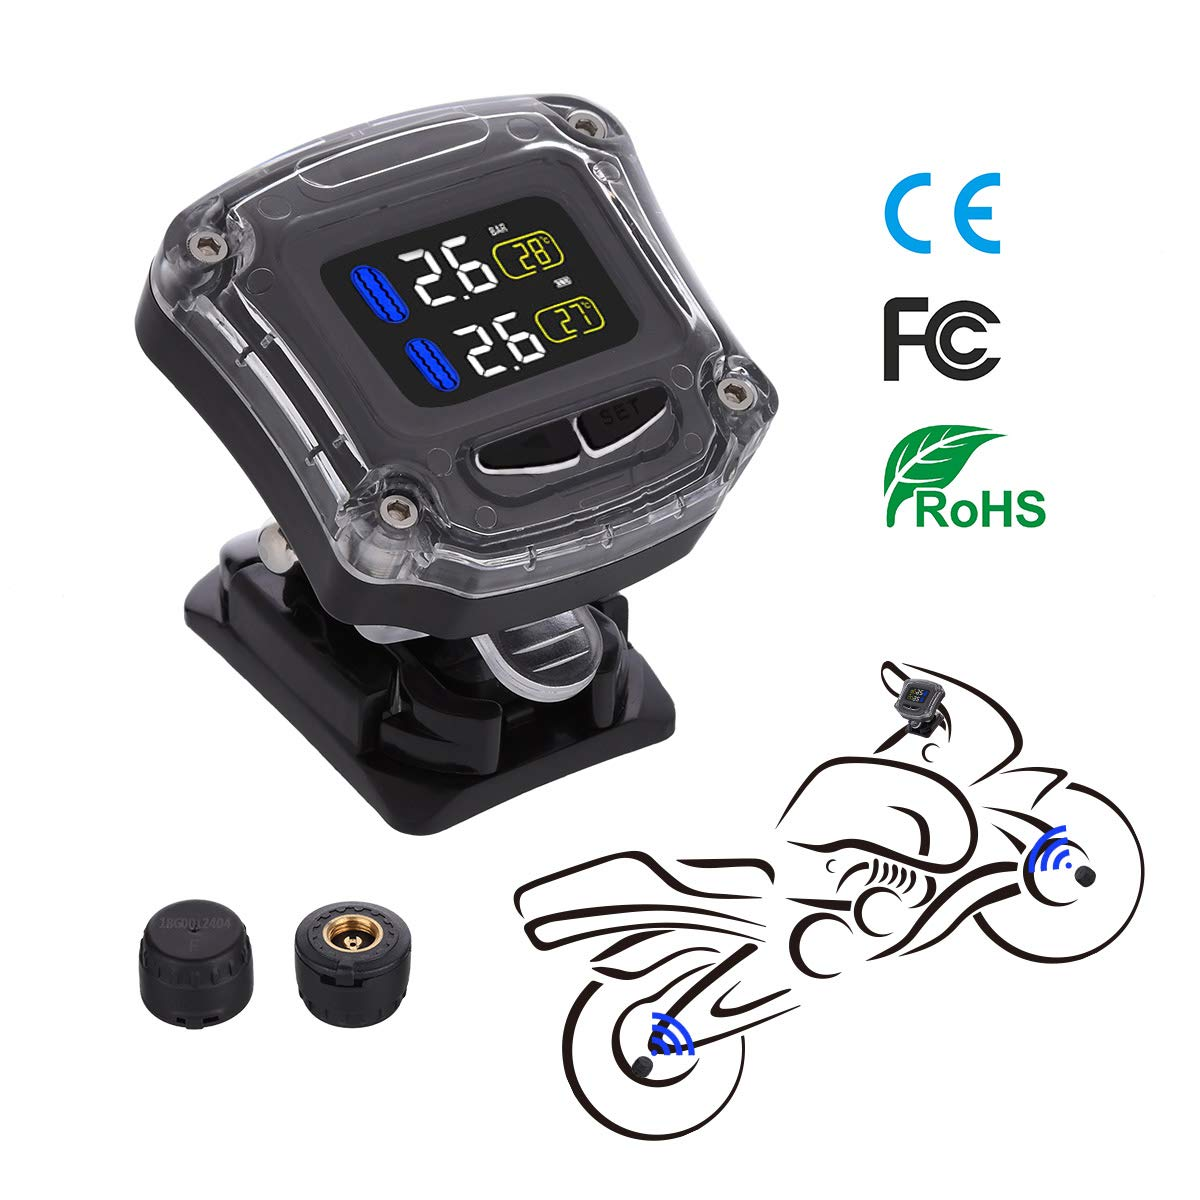 Tire Pressure Monitoring System TPMS Wireless Tire Pressure Monitoring Motorcycle Tires Motor Fatbike Bicycle Auto Tyre Alarm Waterproof 2 External Sensors Two-Wheeled Motorcycle Manfiter